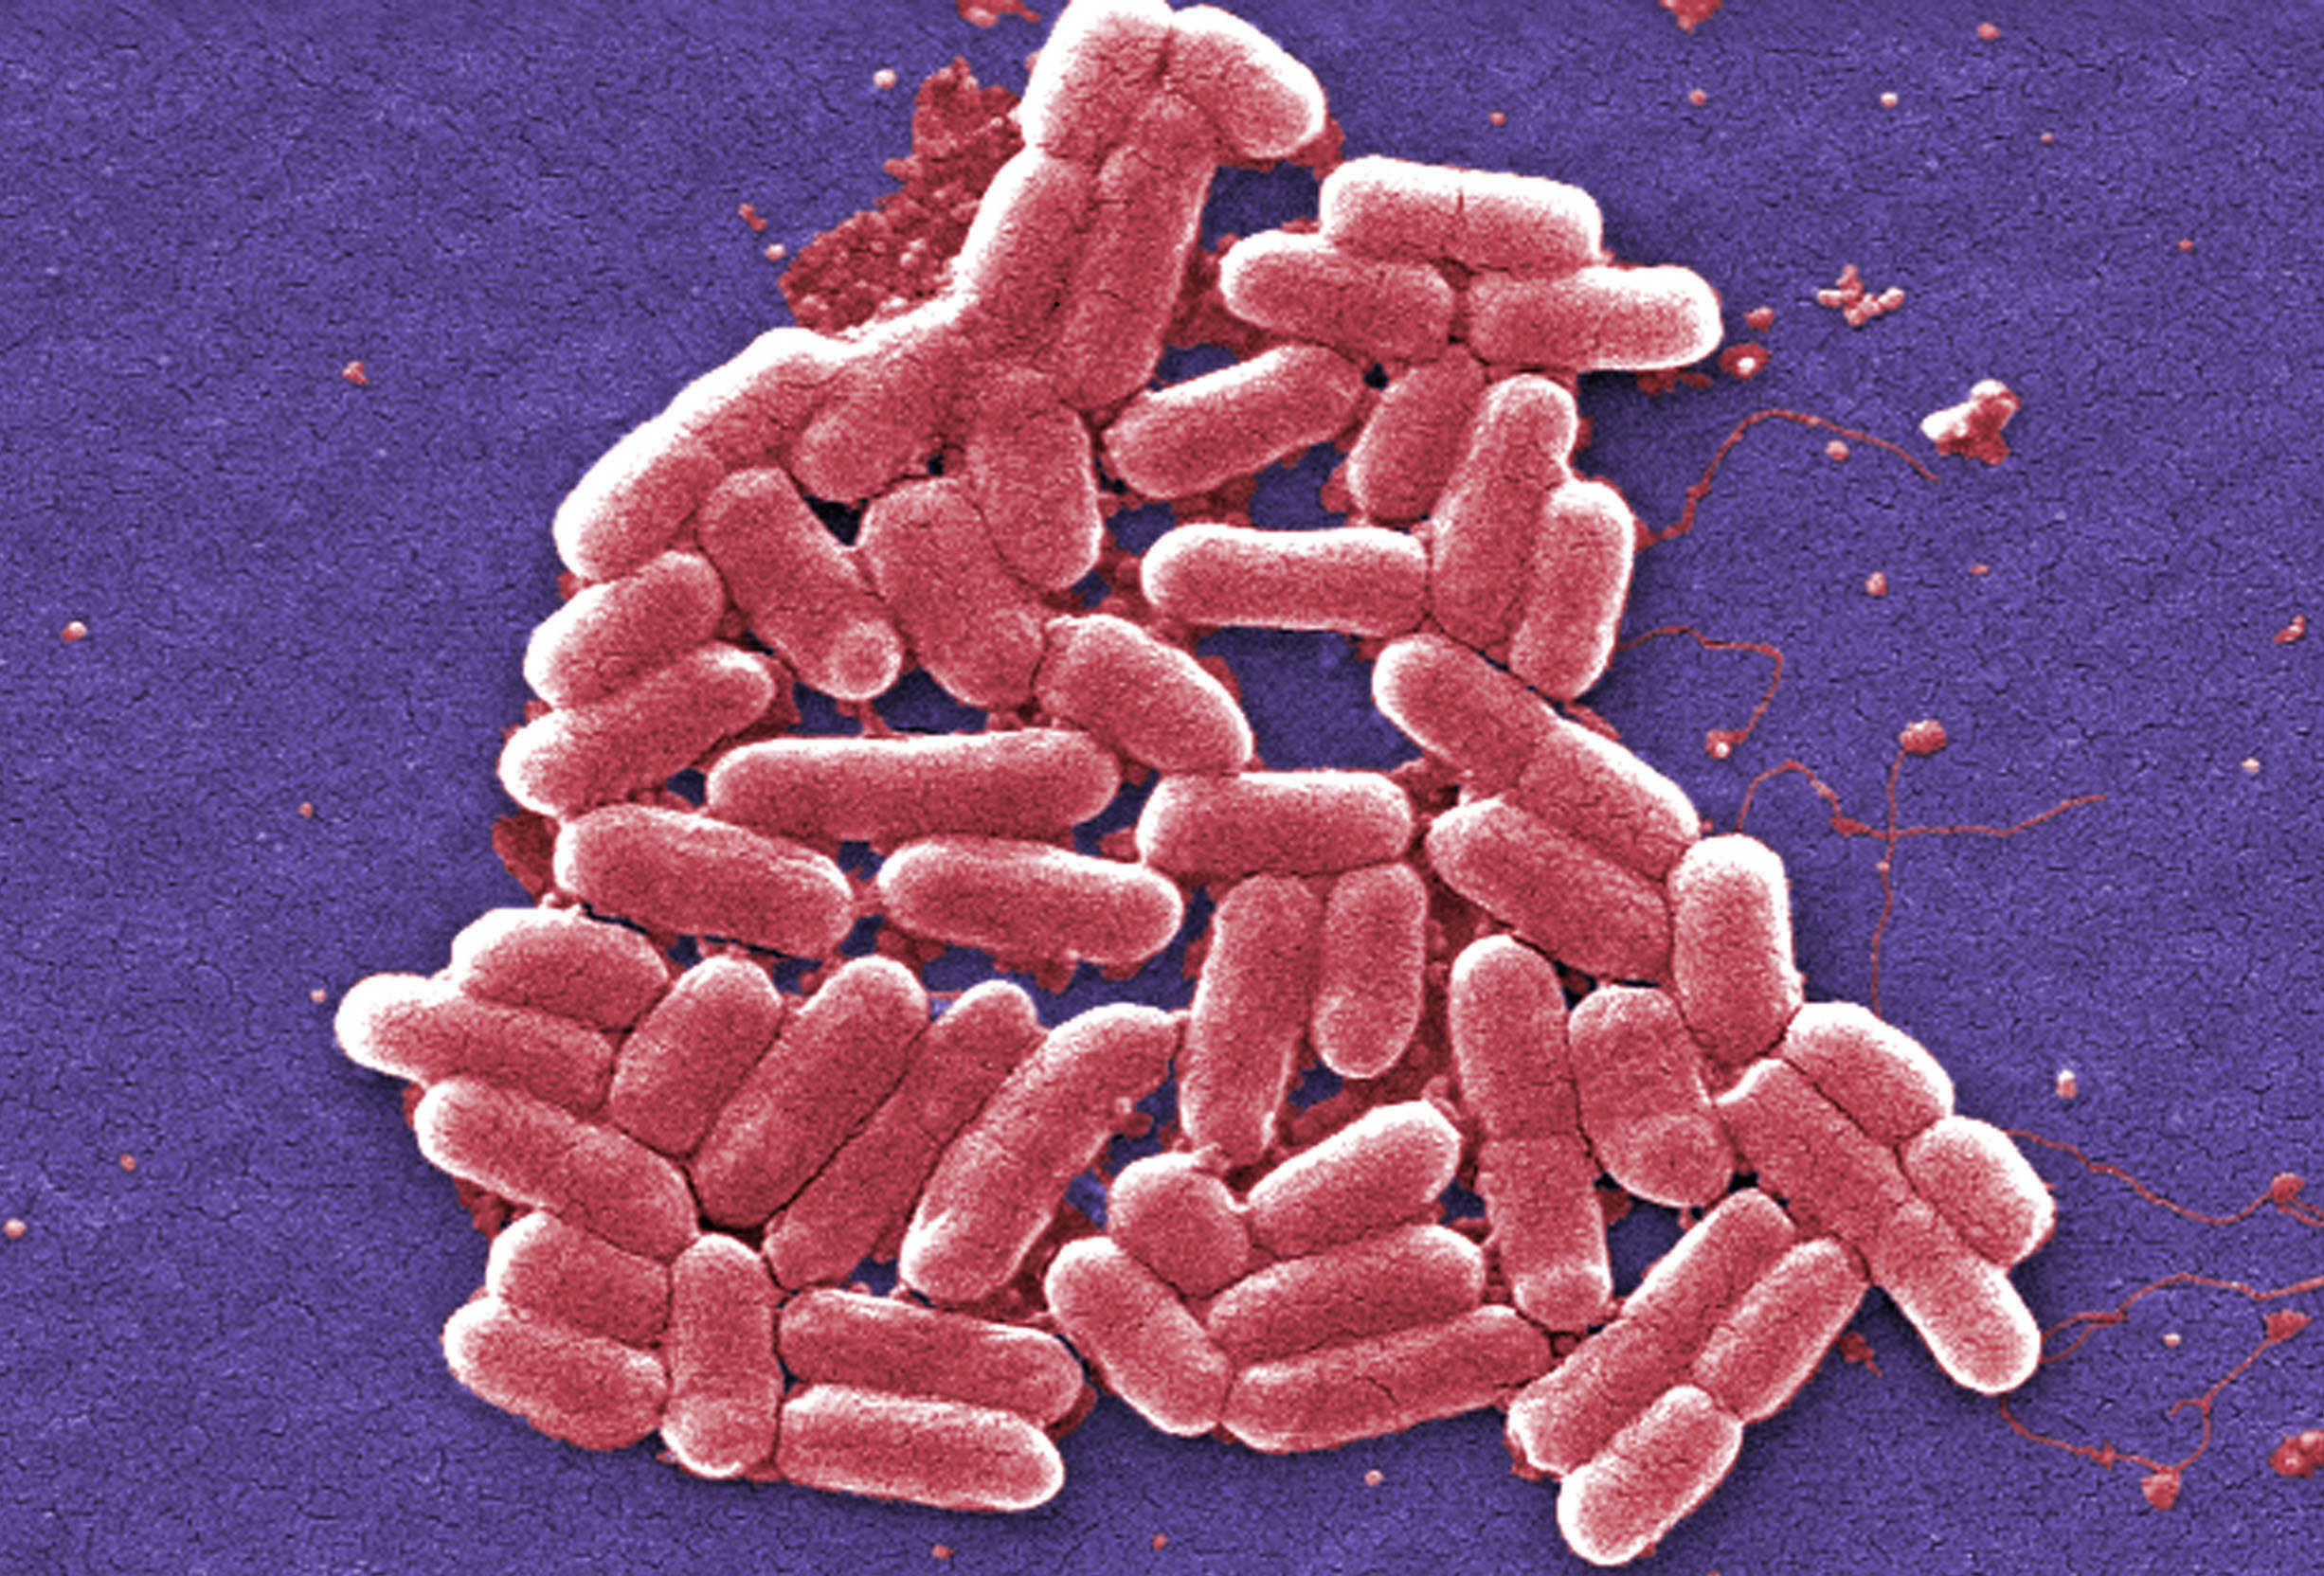 The threat of 'superbugs' and infections that can't be treated